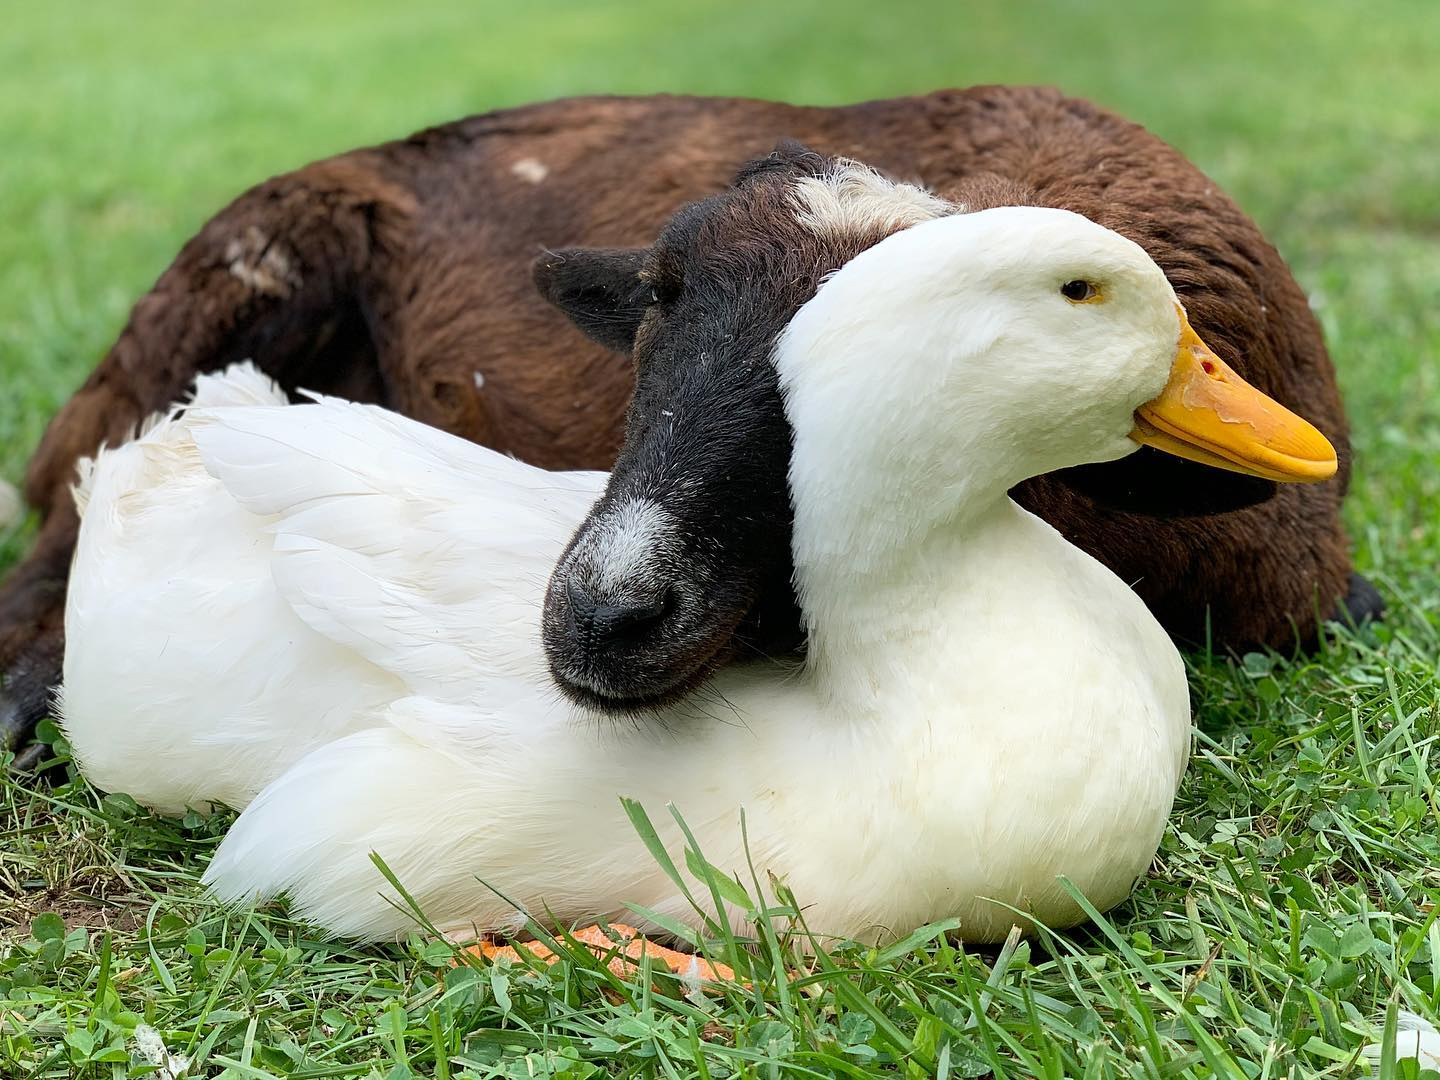 Goat and duck bffs